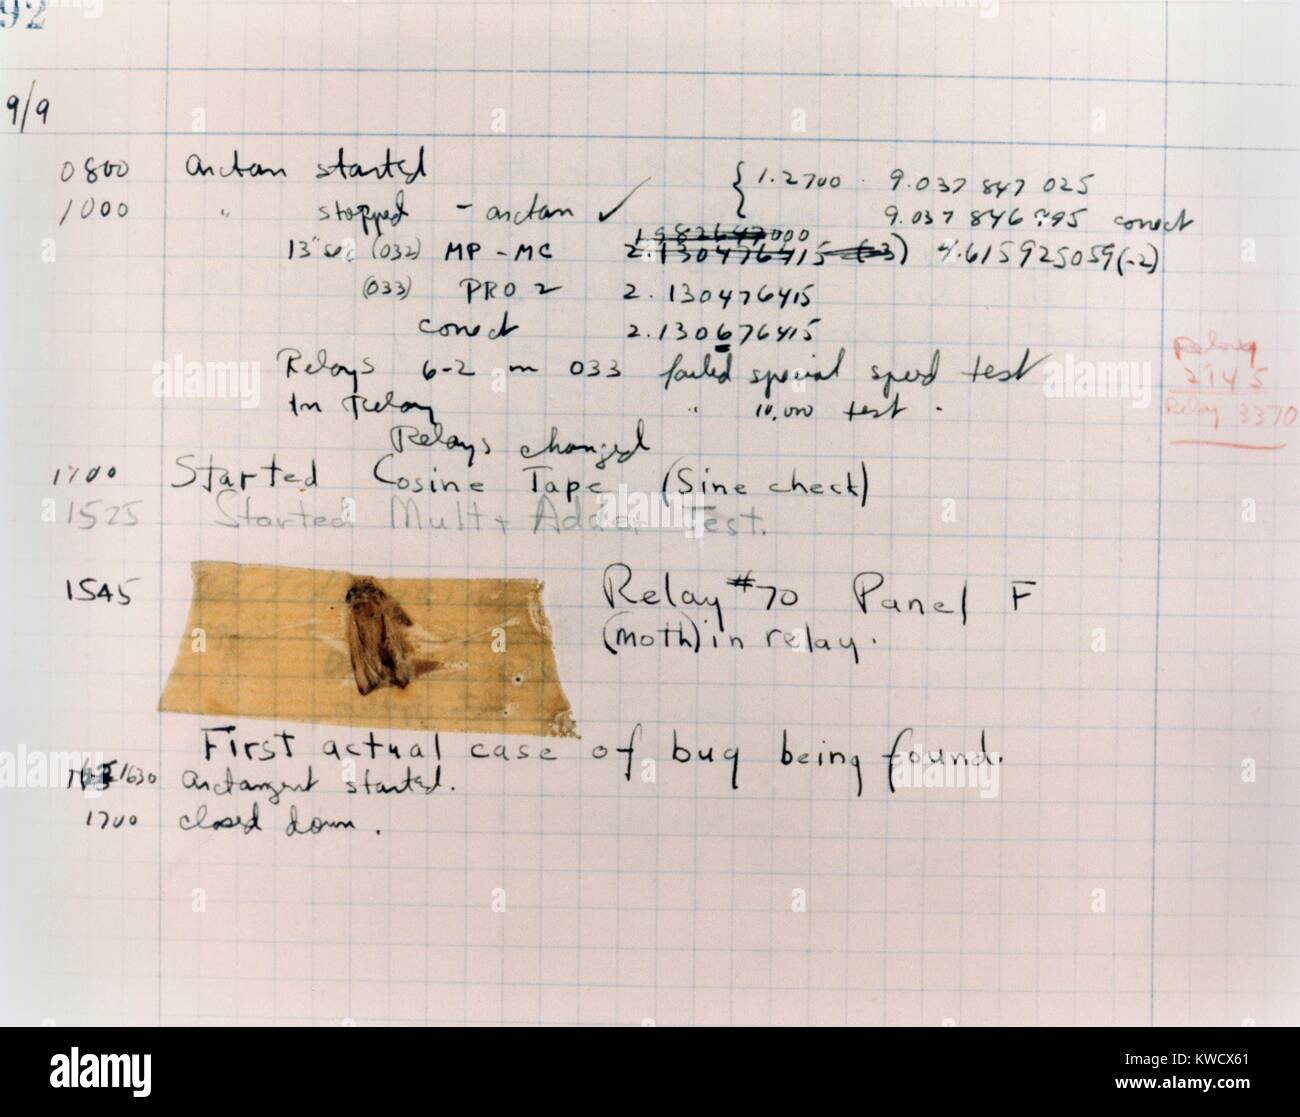 Technical service card reporting the first computer bug at Harvard University, Sept. 9, 1945. Taped to the record Stock Photo